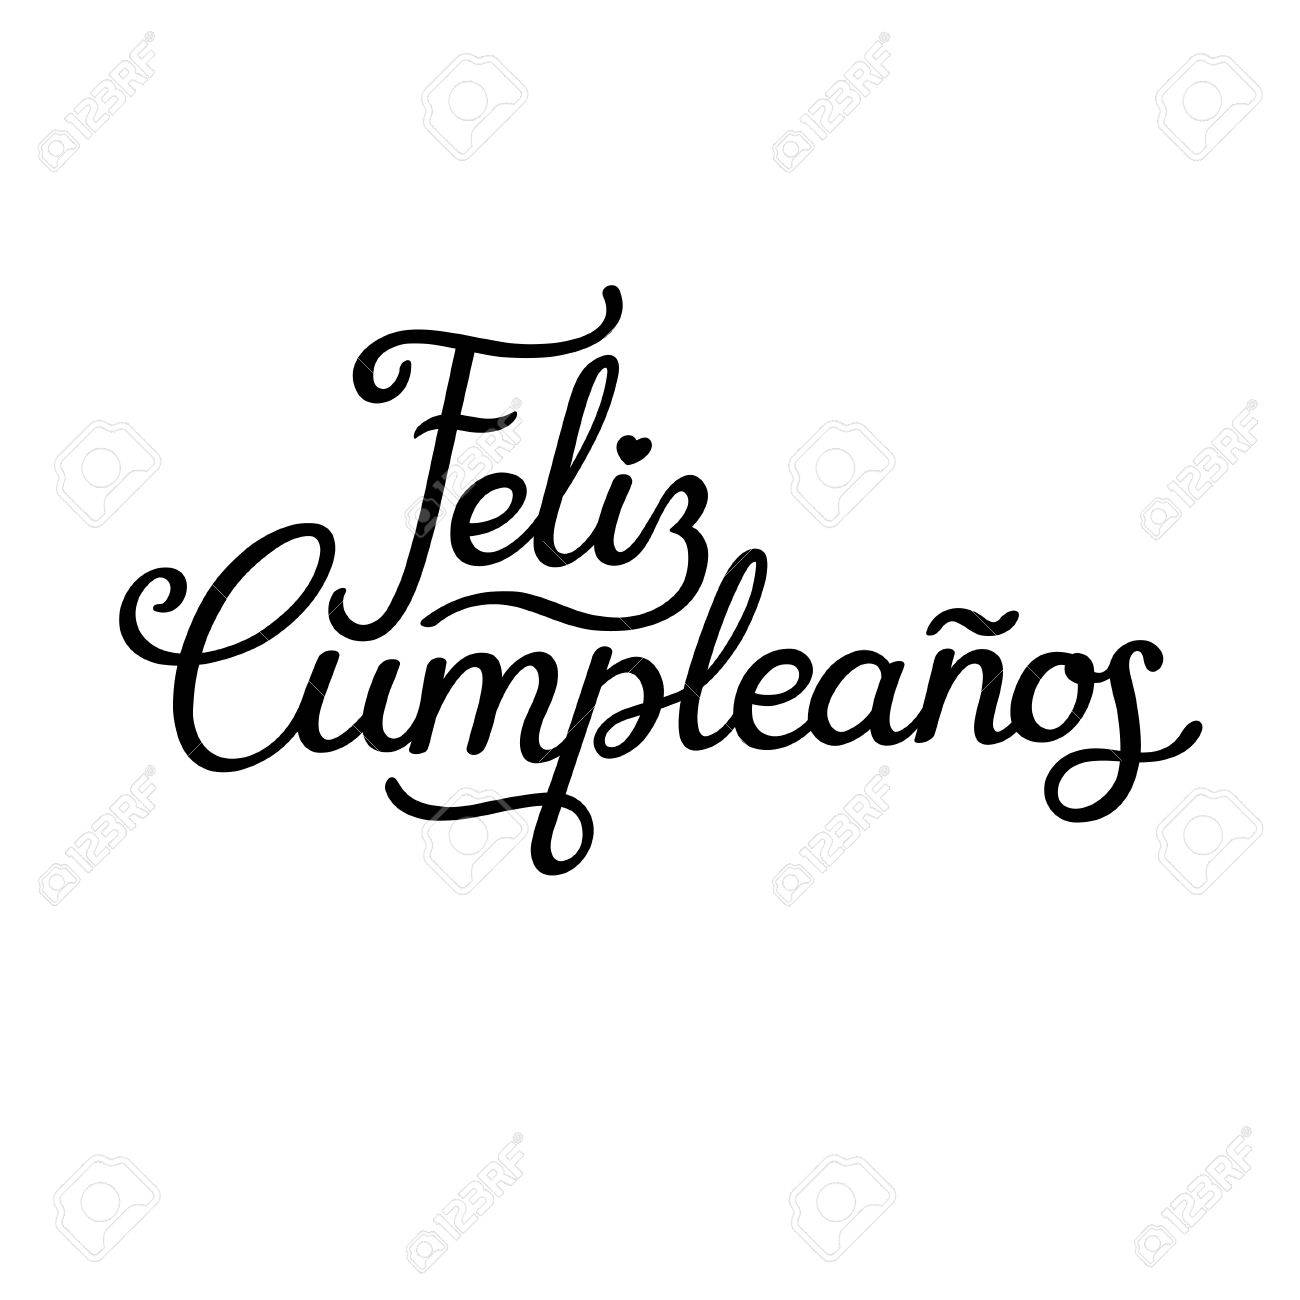 Feliz cumpleanos convert in english